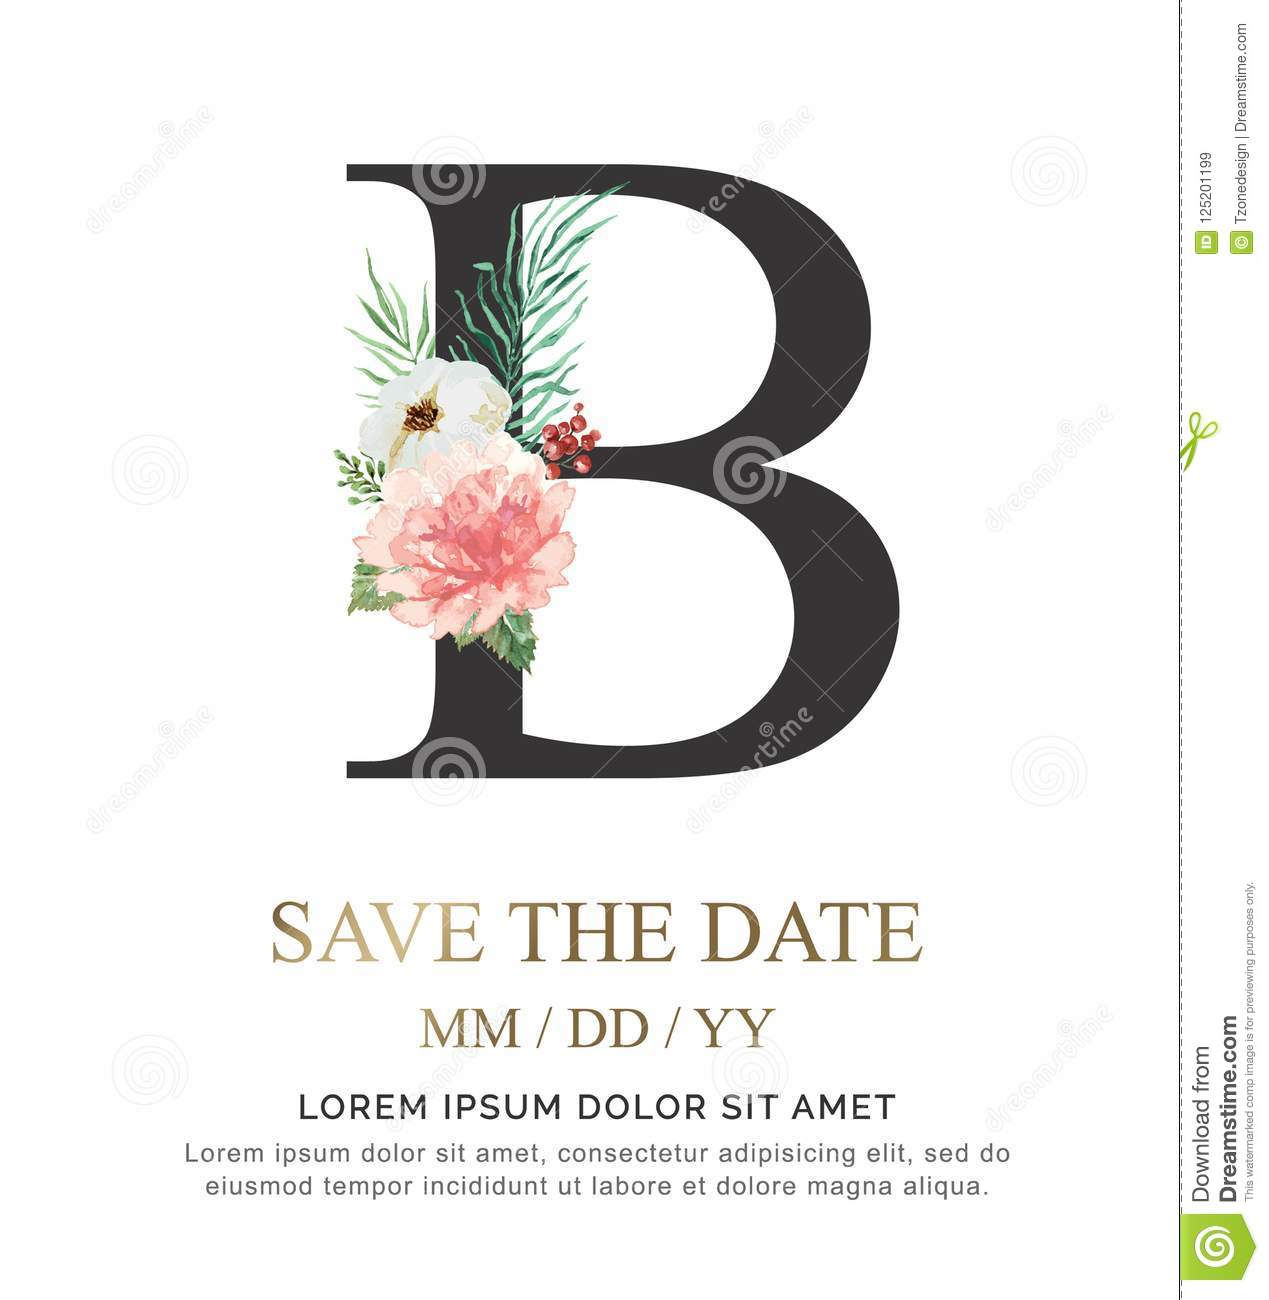 letter b hand paint watercolor flower and leaf for wedding and invite cards